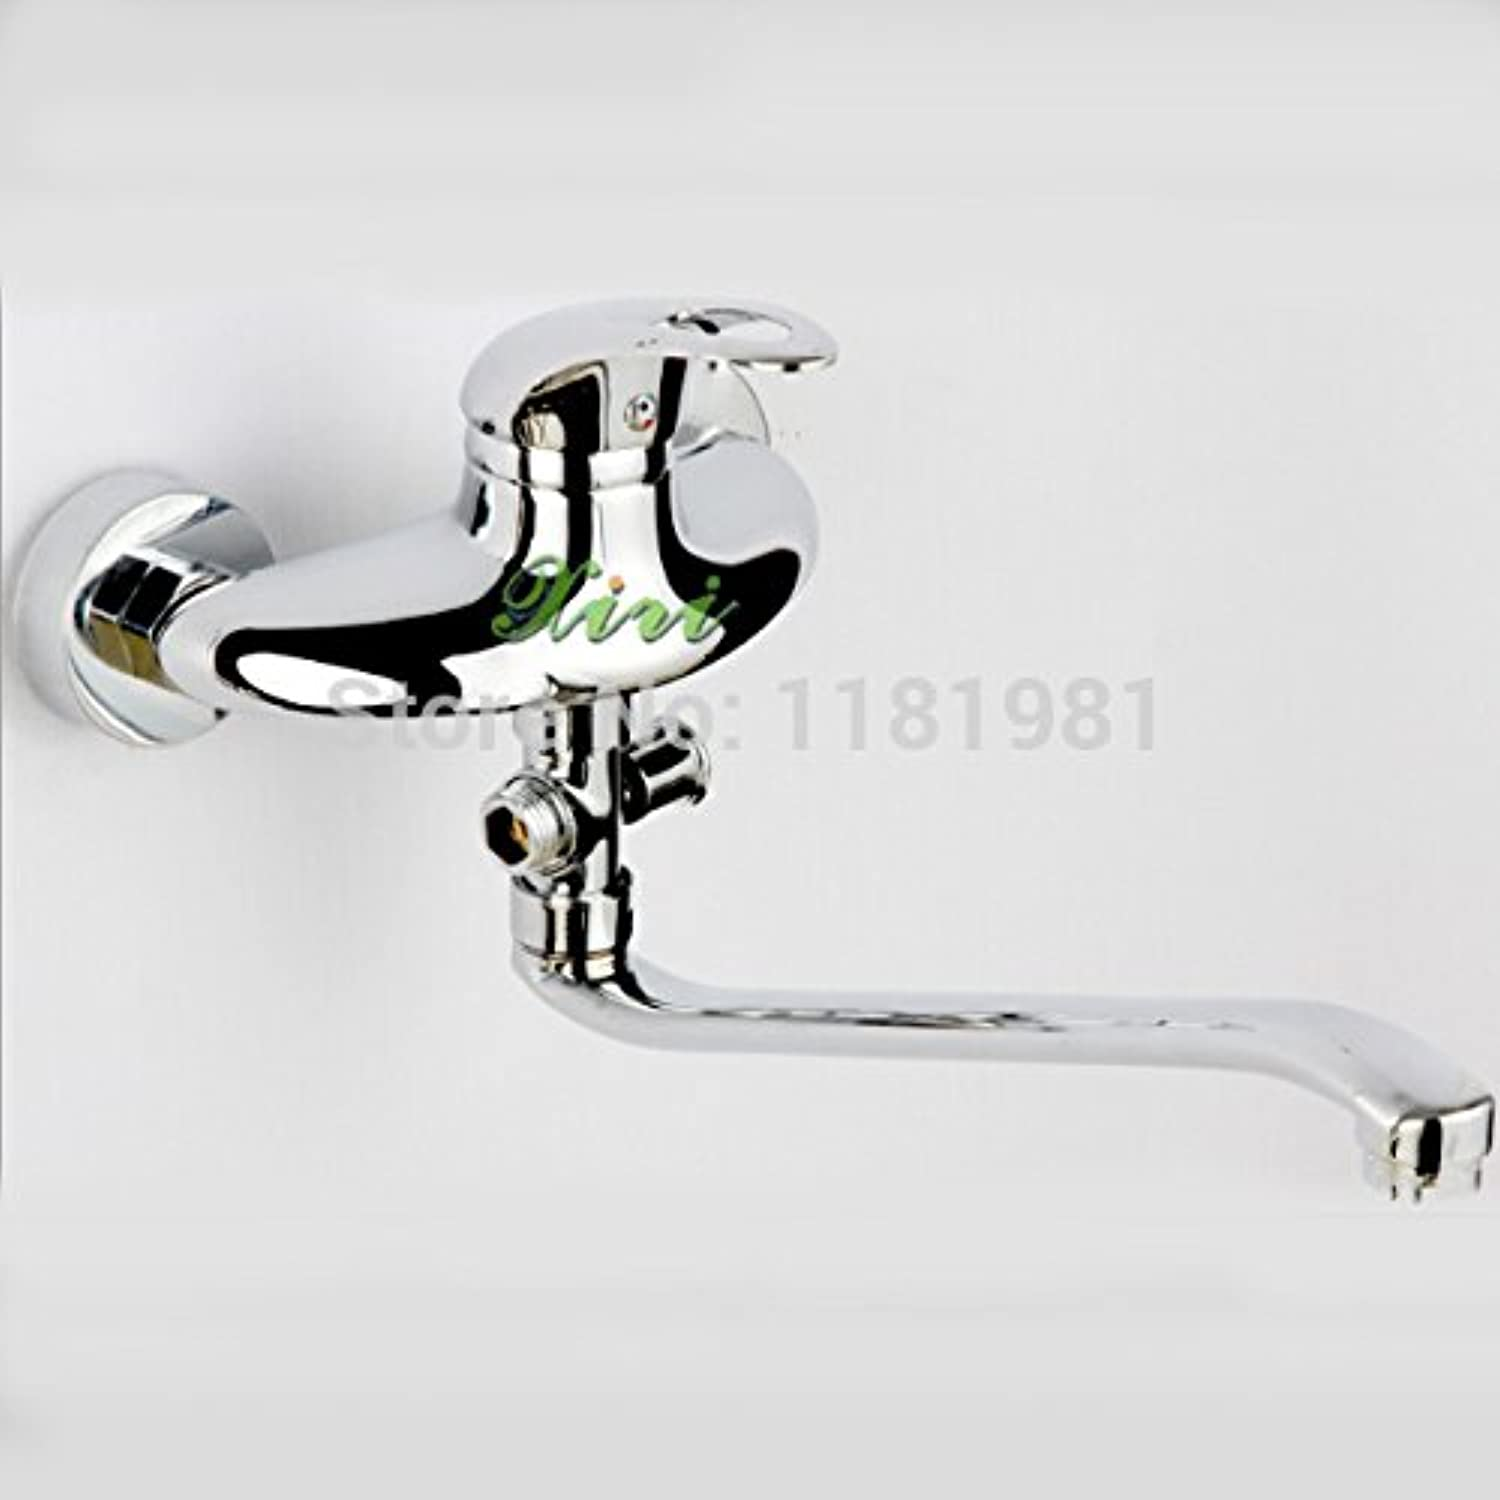 Retro Deluxe Faucetinging Bigger Cute Design Smoothy hot and Cold Mixer Waterfall Kitchen Faucet Z008-9A